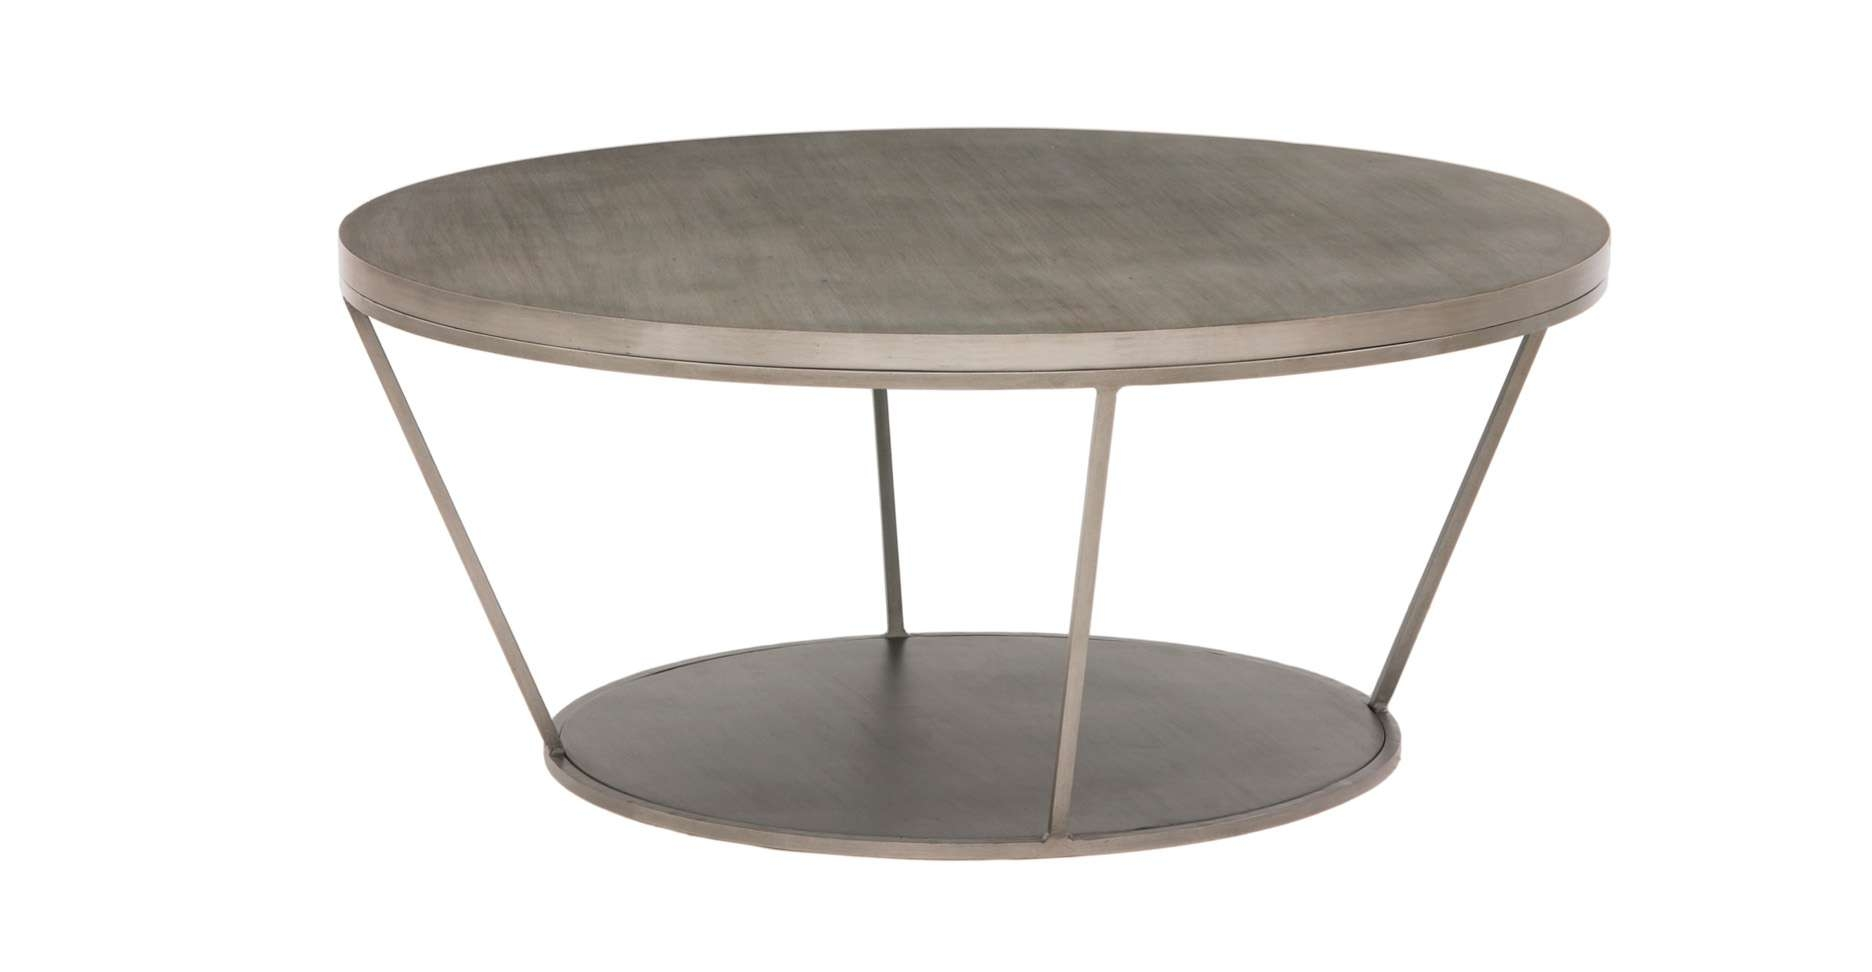 Well Known Round Steel Coffee Tables Regarding Blair Round Coffee Table (View 18 of 20)